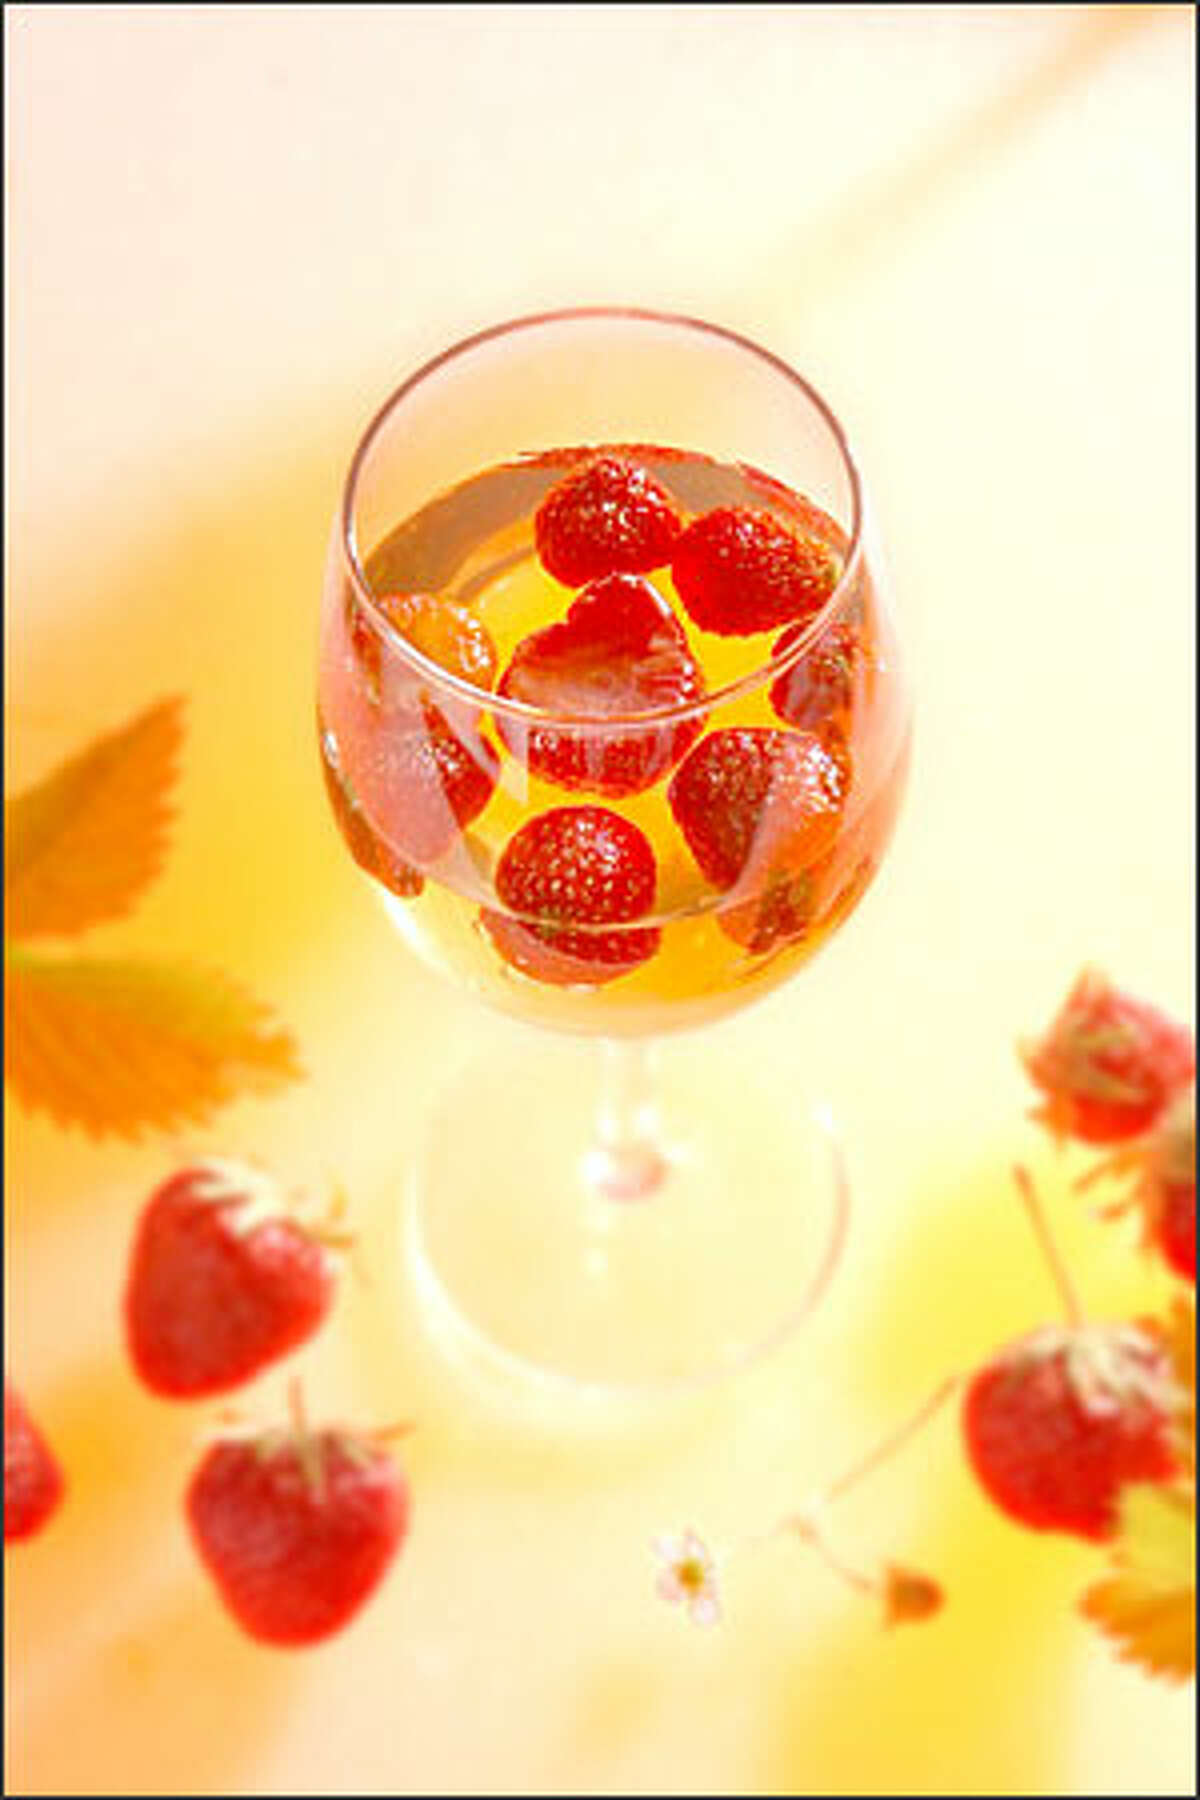 Strawberries in Sauternes Gelee is a wine-based jelly that is served in wine glasses.